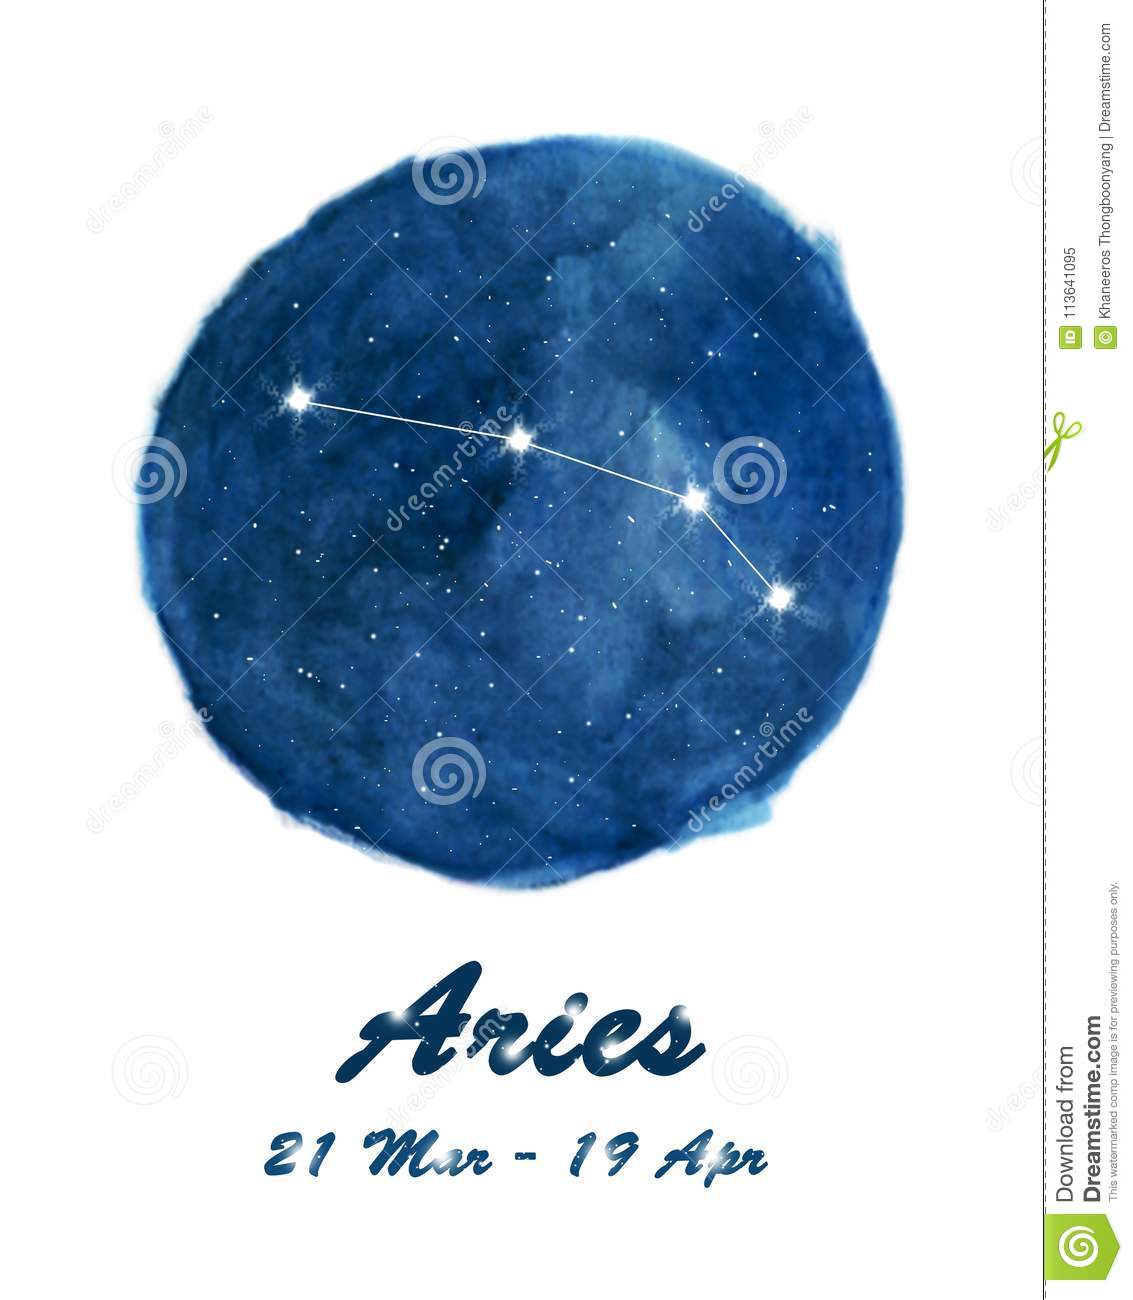 Aries constellation icon of zodiac sign Aries in cosmic stars space. Blue starry night sky inside circle background.